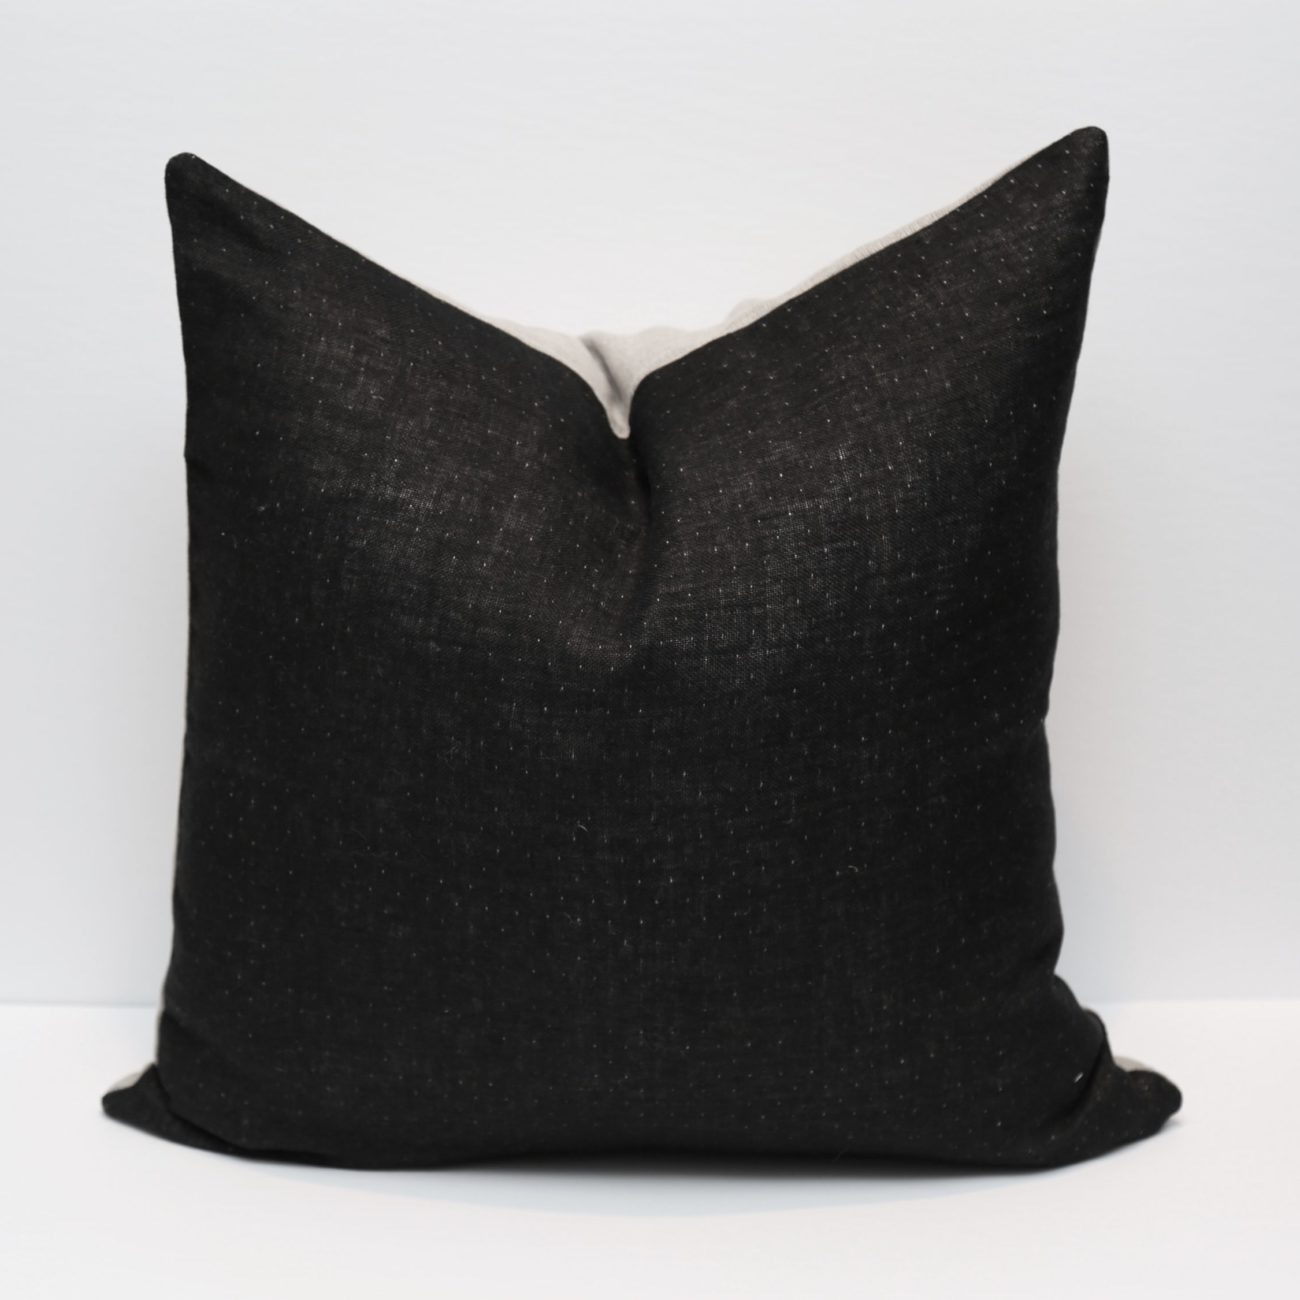 Linen Two-Toned Pillow Cover, Graphite and Natural